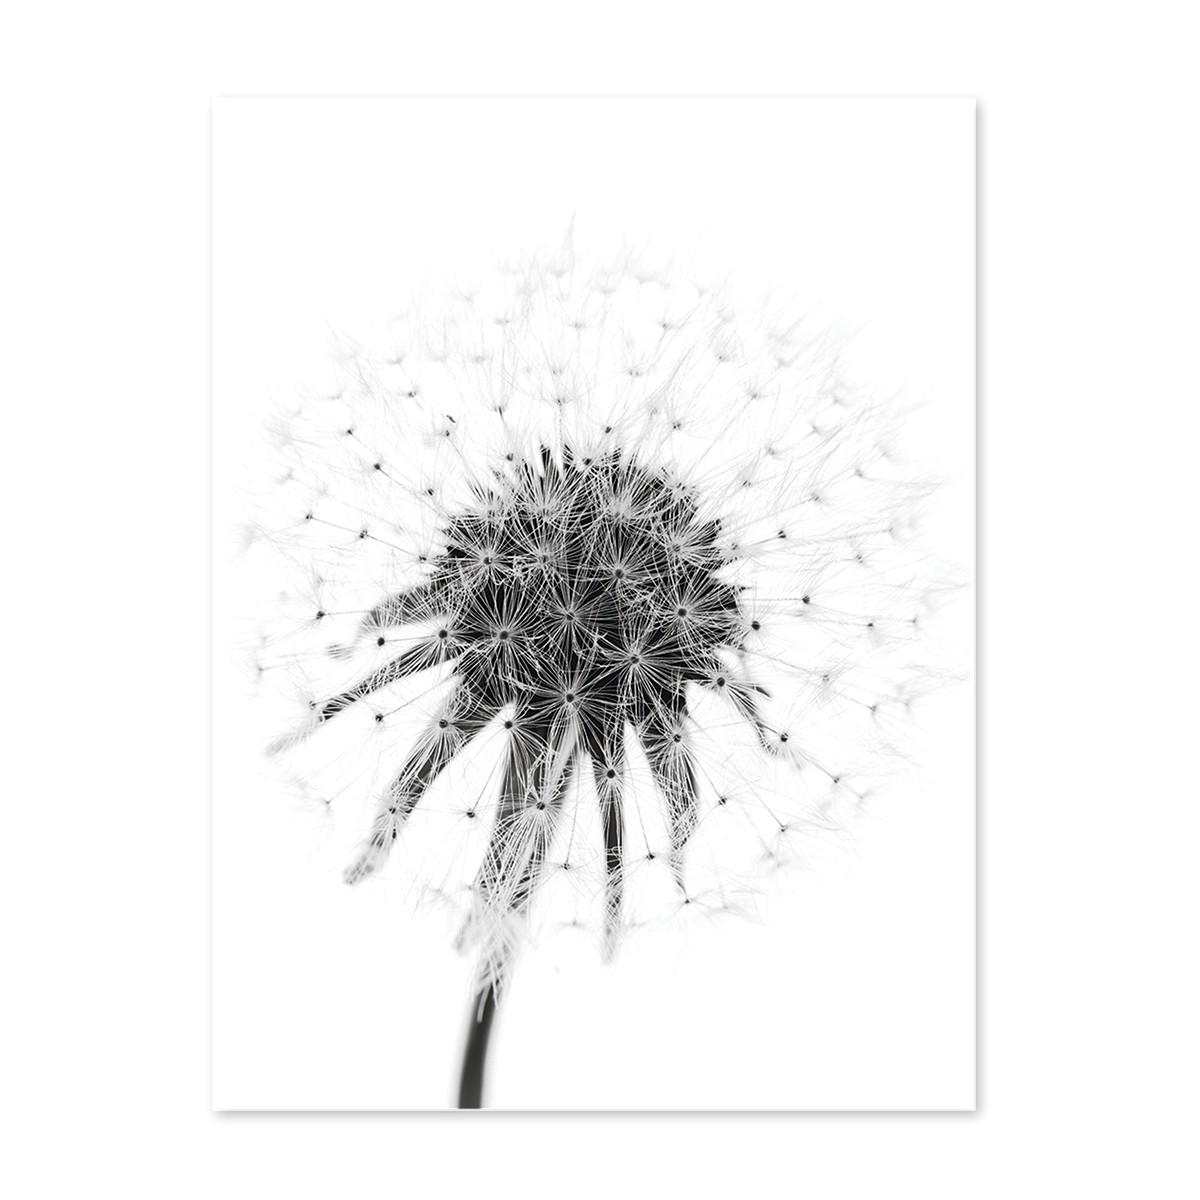 poster 39 pusteblume 39 30x40 cm schwarz weiss motiv natur. Black Bedroom Furniture Sets. Home Design Ideas